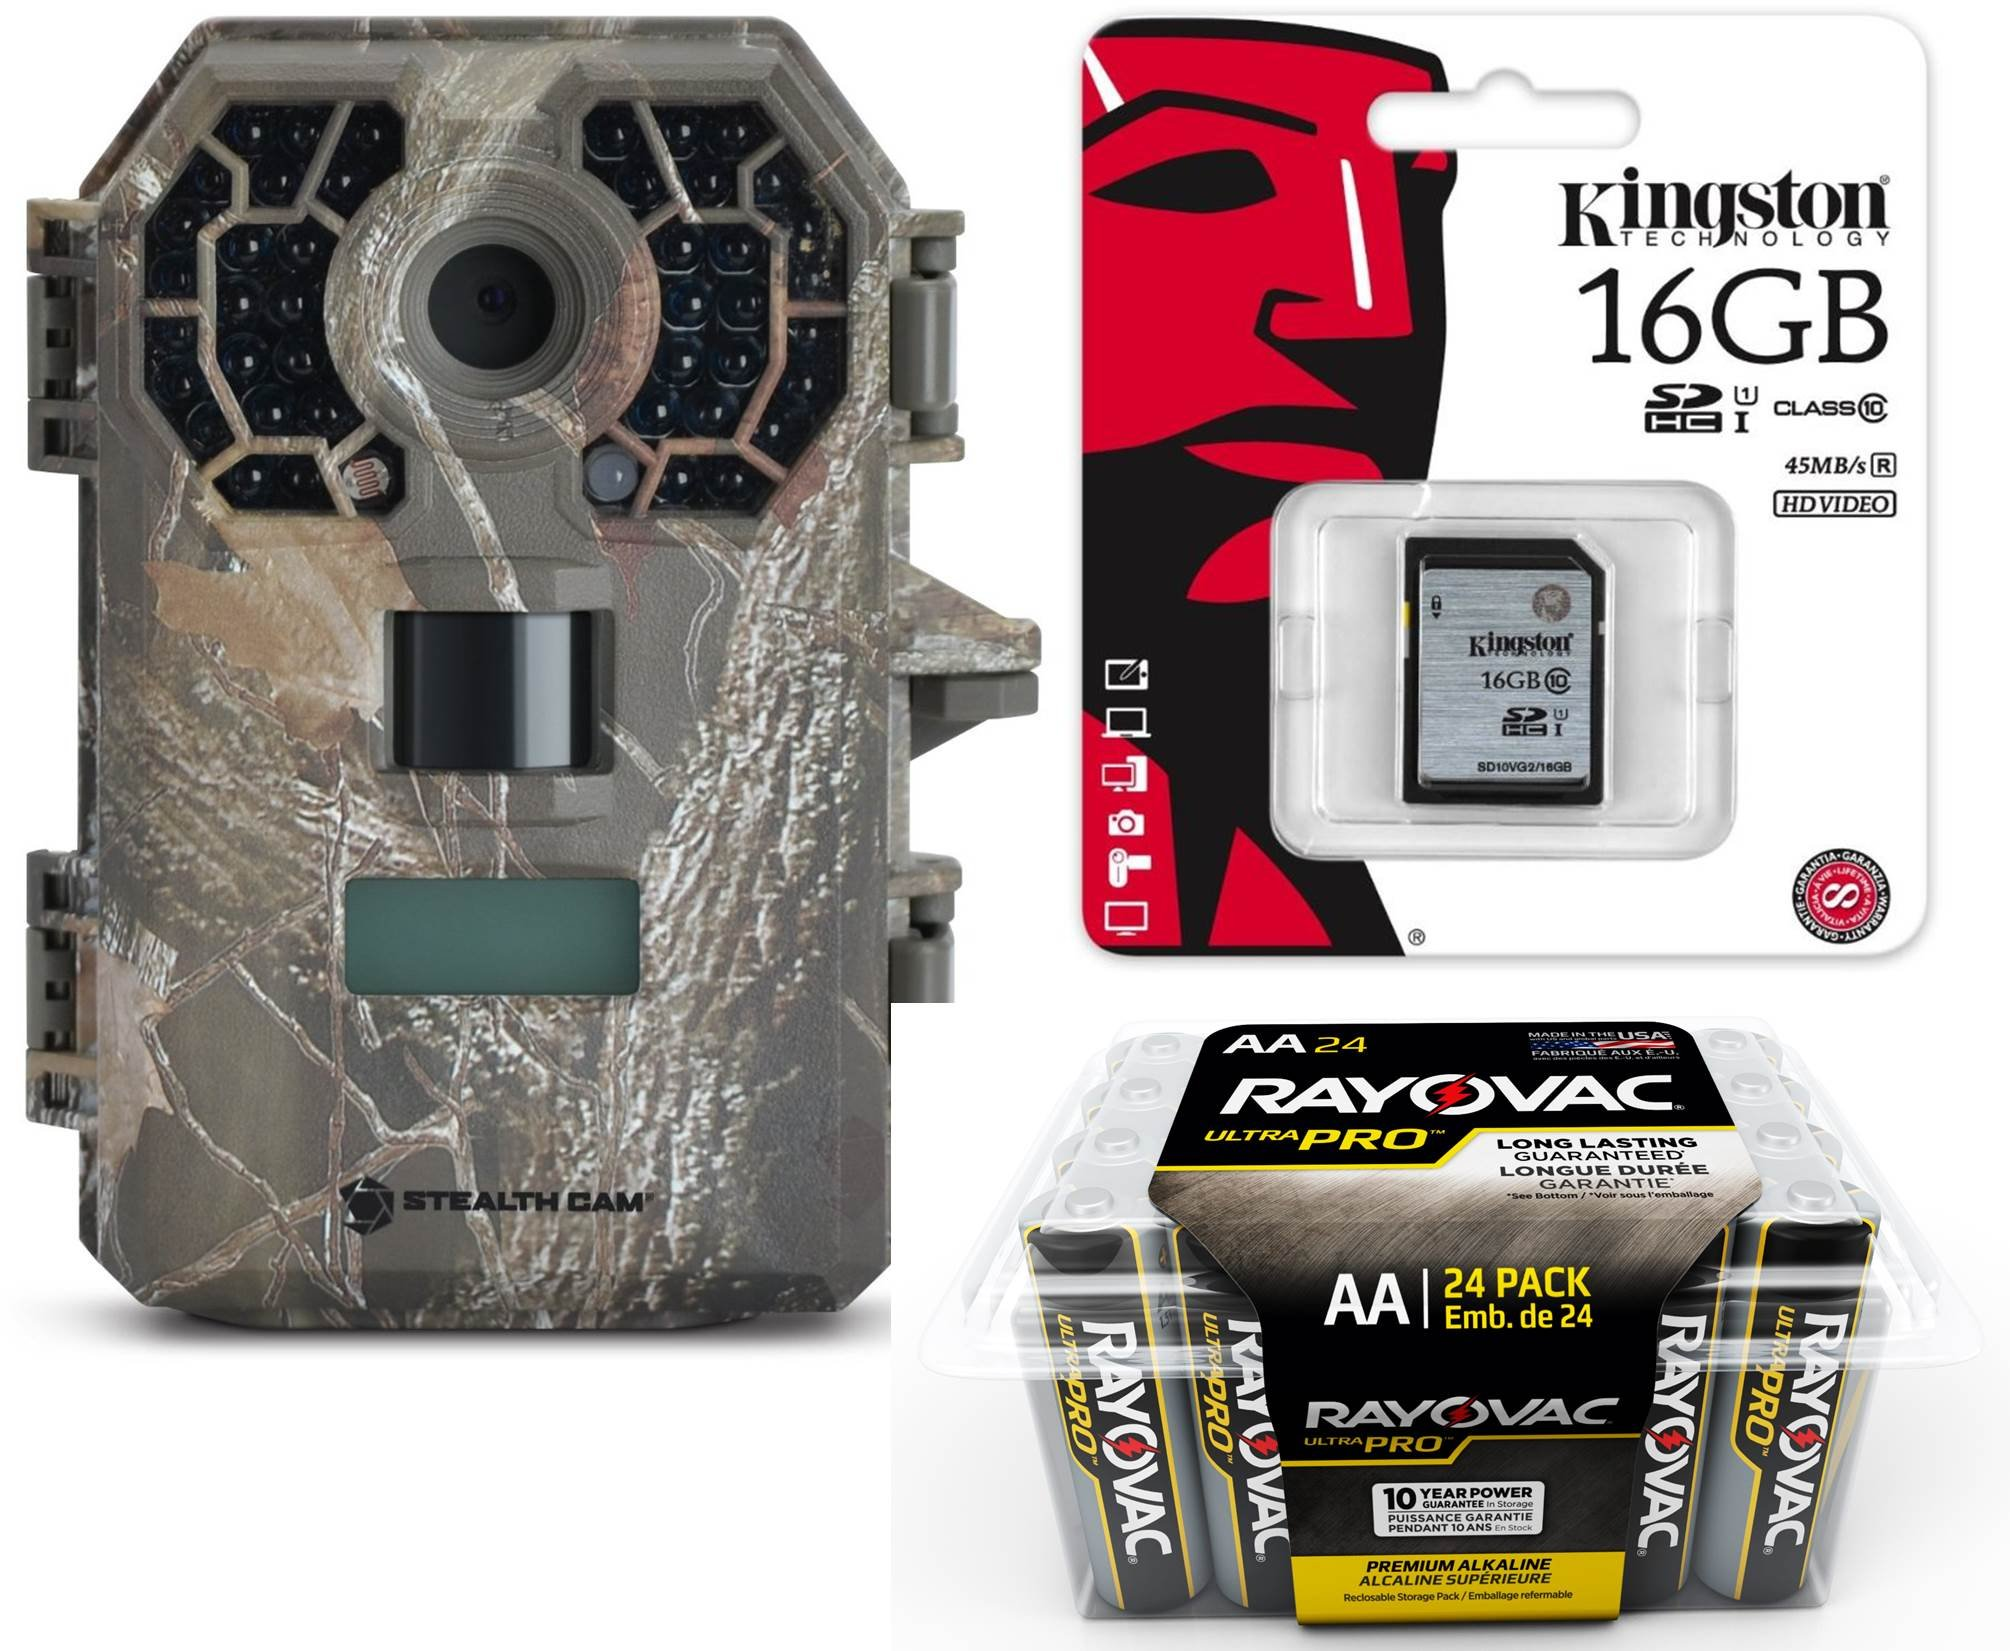 Trail Camera Bundle 3 Items | Stealth Cam G42NG + Rayovac AA Battery 24 PK + Kingston 16 GB SD Card | 10 MP Pictures | HD Video W/ Audio| NO Glow Night Vision Motion Activated Infrared 100 FT Range